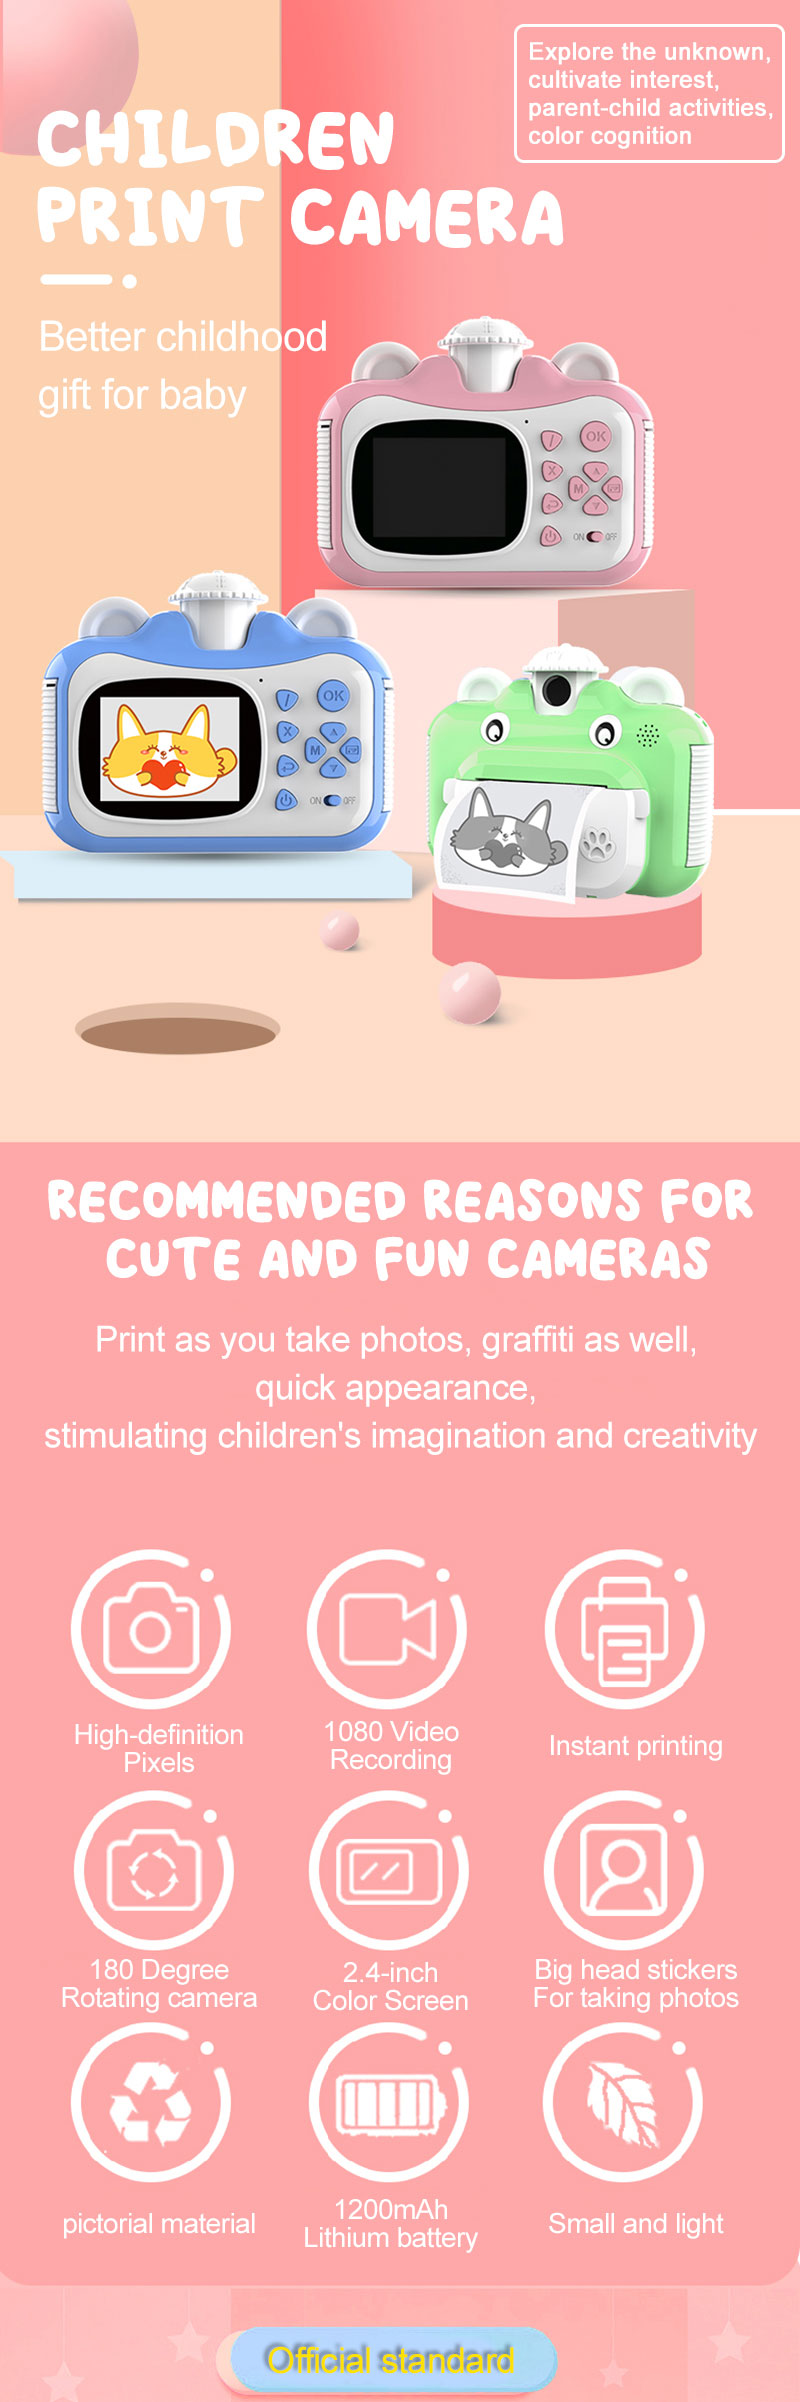 Minibear Children Camera Instant Print Camera For Kids 1080P HD Camera With Thermal Photo Paper Toys Camera For Birthday Gifts 0